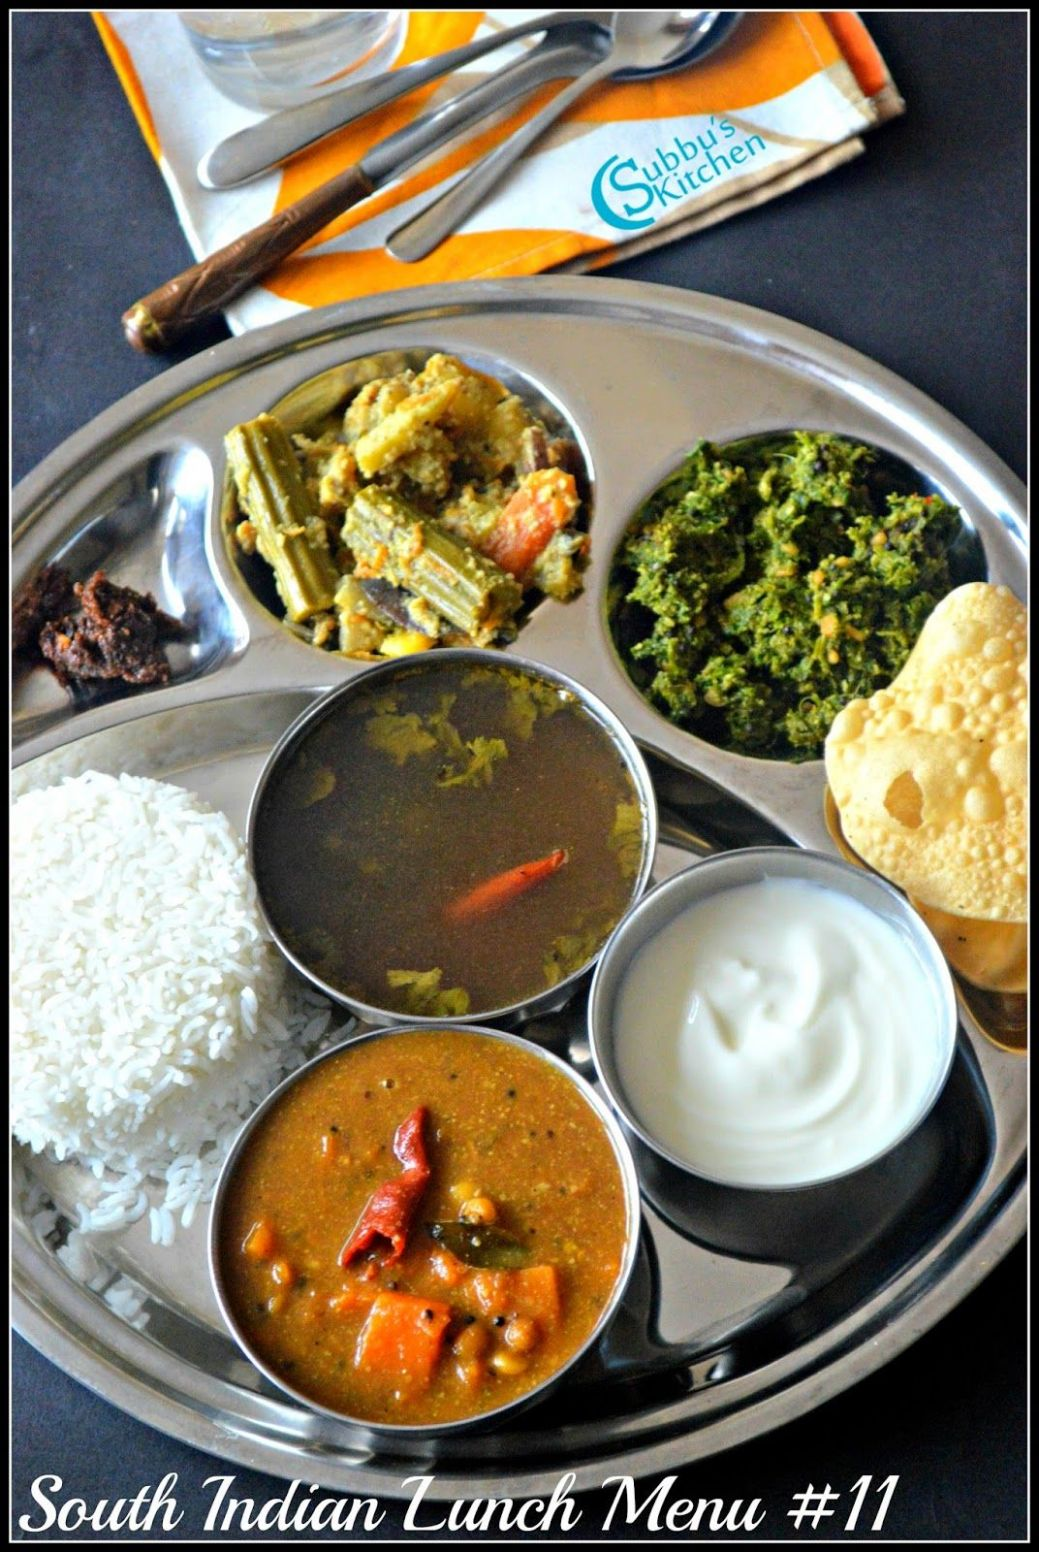 South Indian Lunch Menu 11 - Parangikai Puli Kuzhambu, Aviyal ...